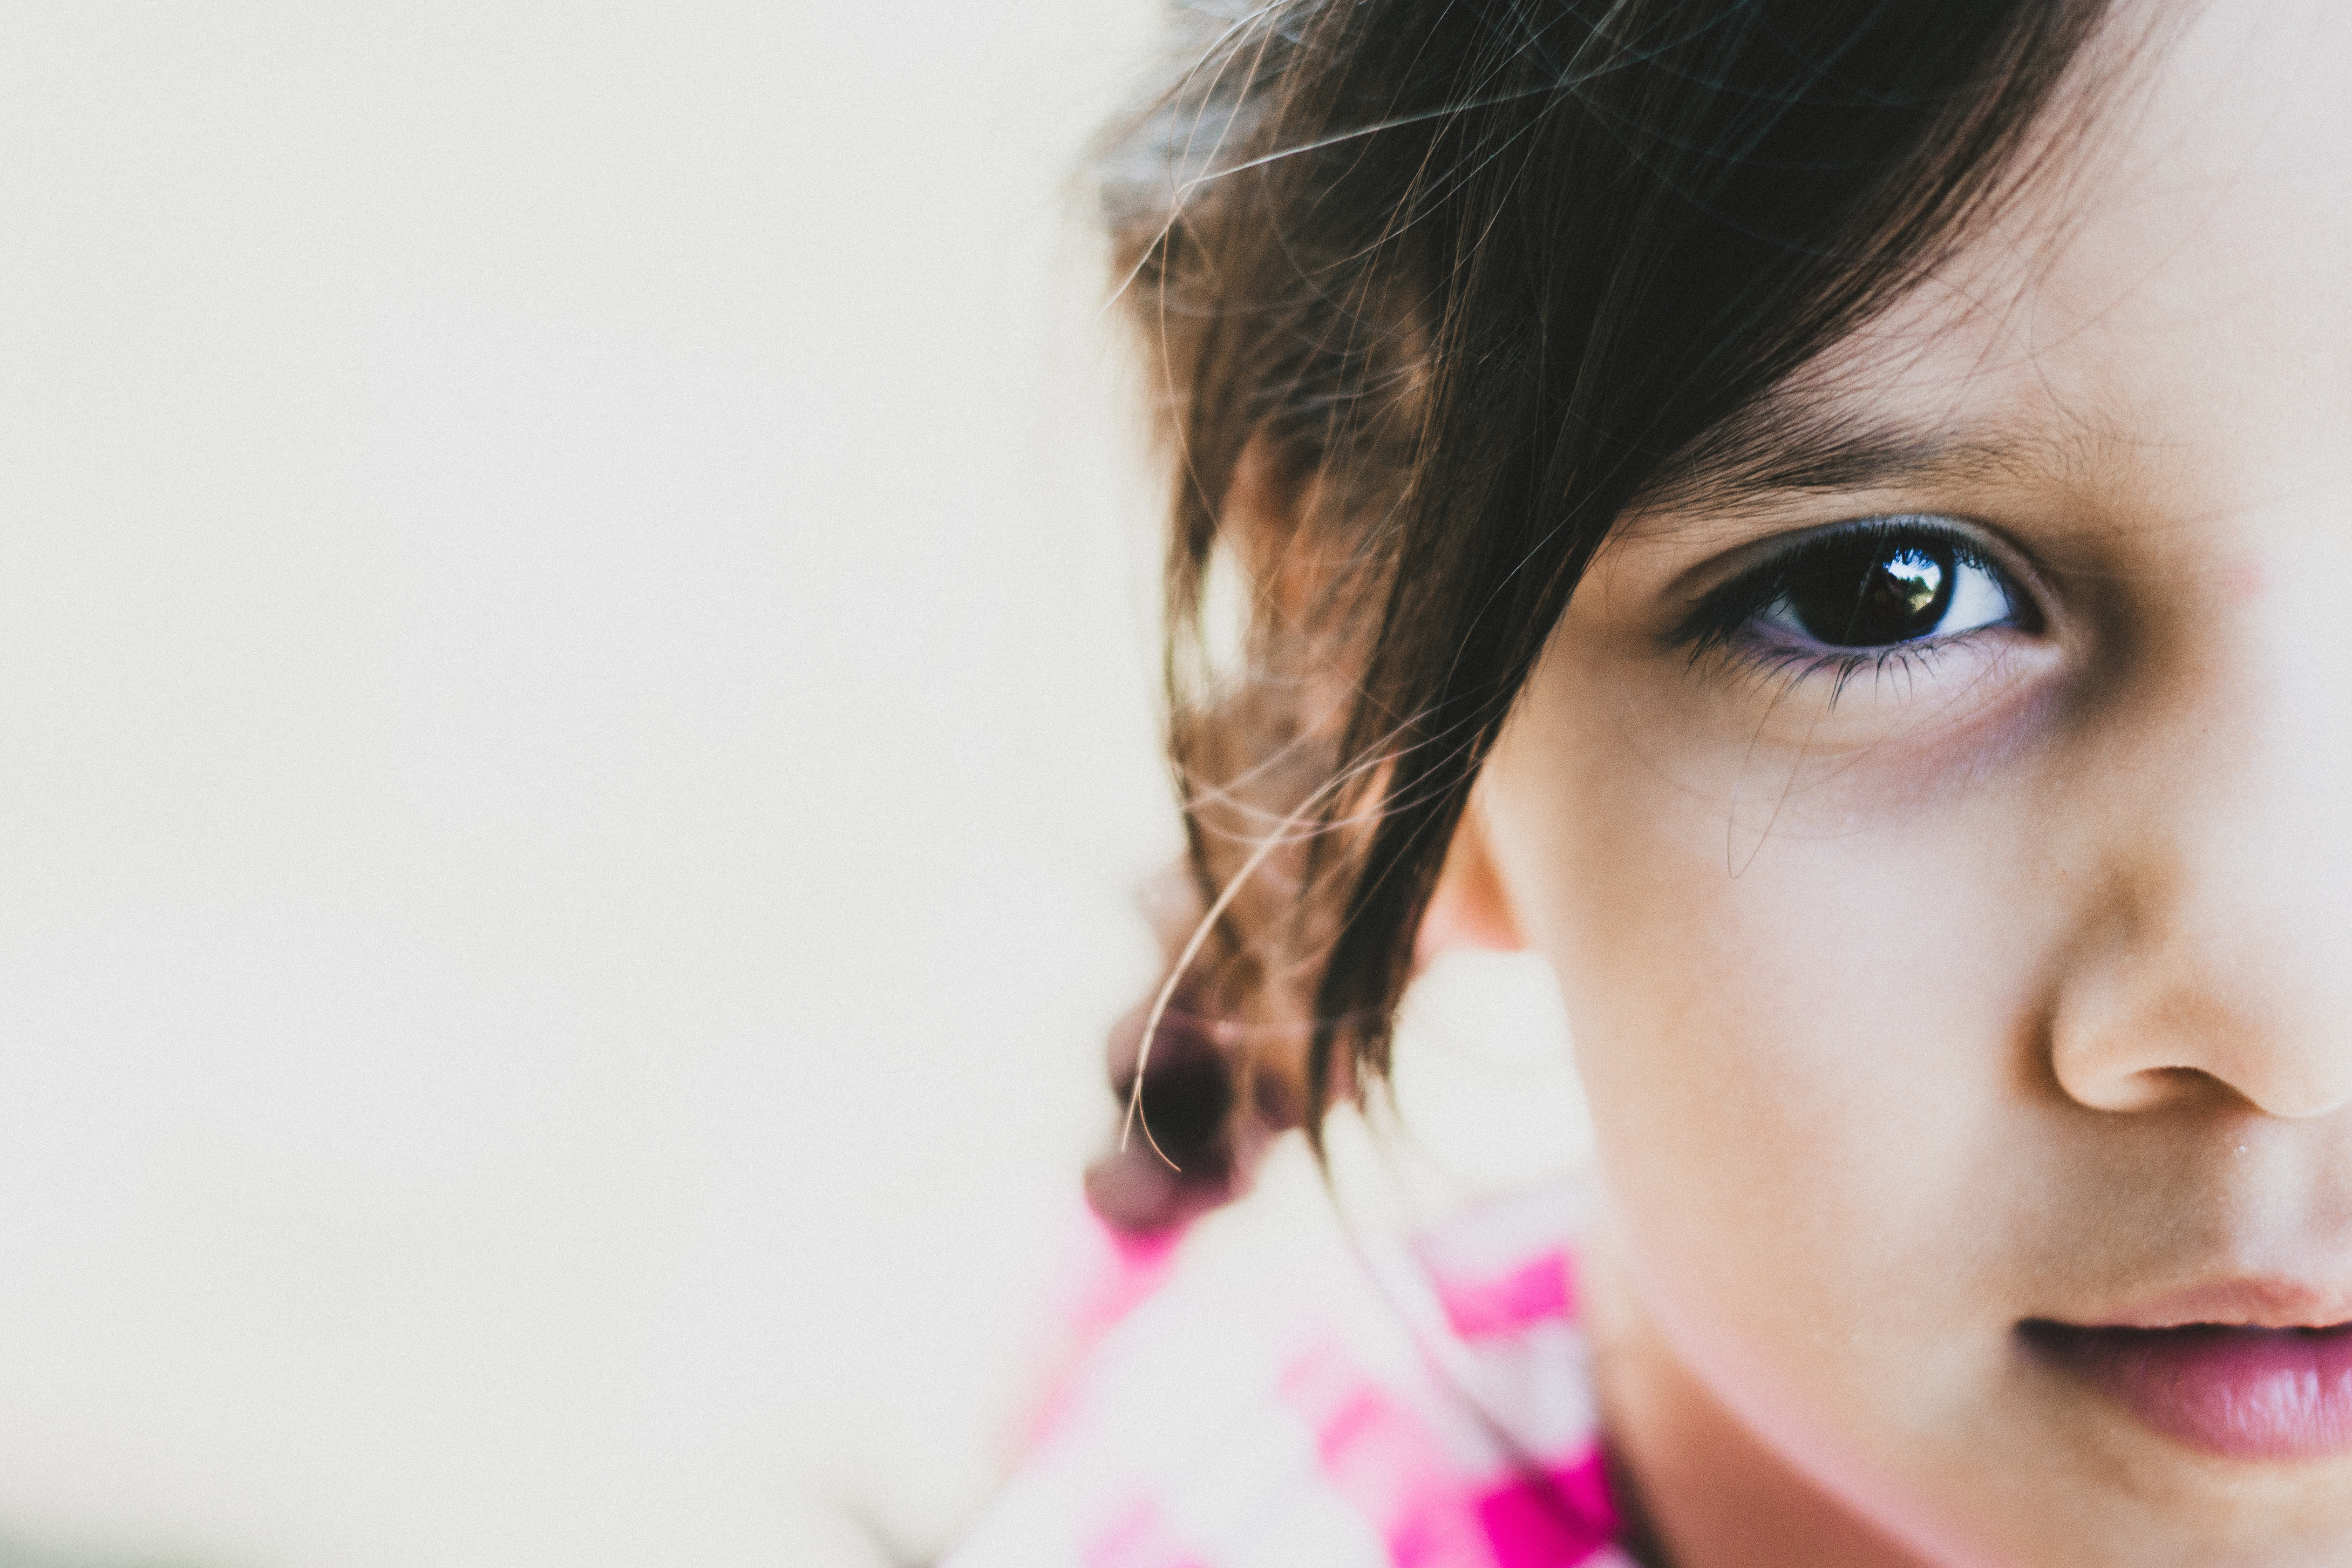 Image of half of little girl's face